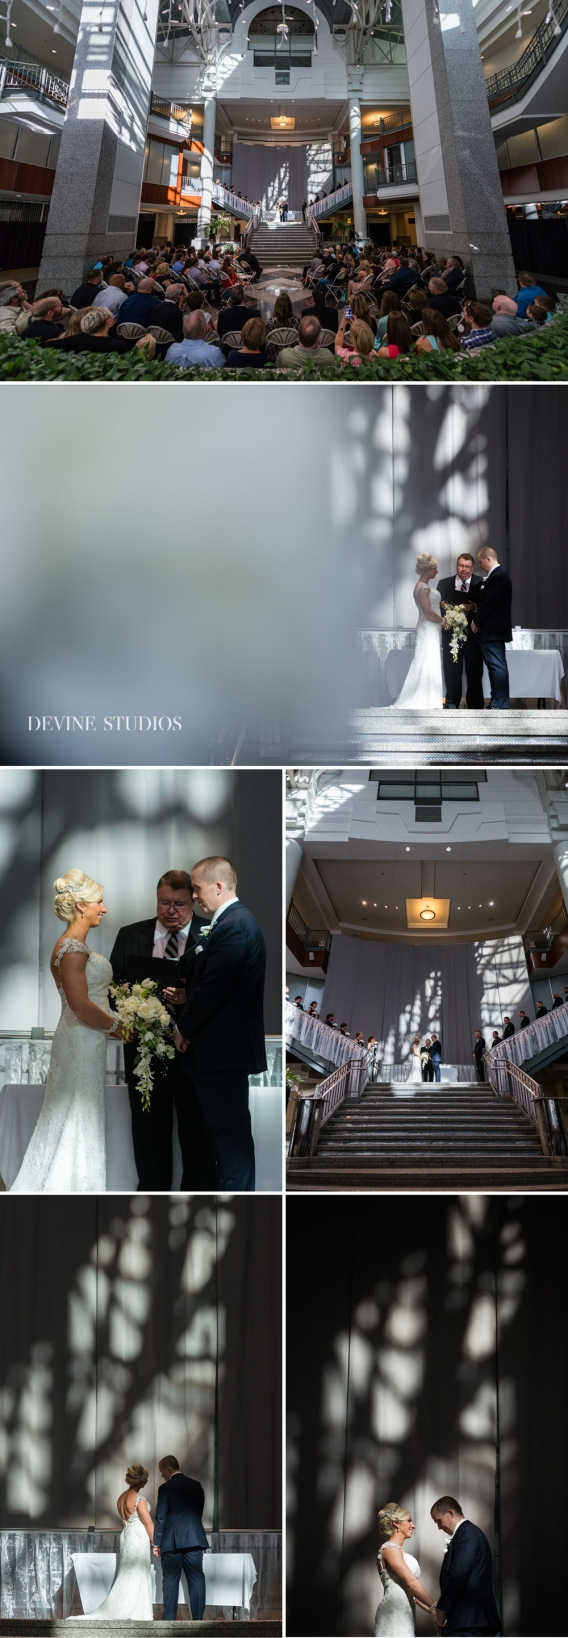 http://devinestudios.com/boudoir/wp-content/uploads/2016/05/10-839-post/Kansas-City-Wedding-Photography-Town-Pavilion-photojournalist-photographers10(pp_w568_h1638).jpg